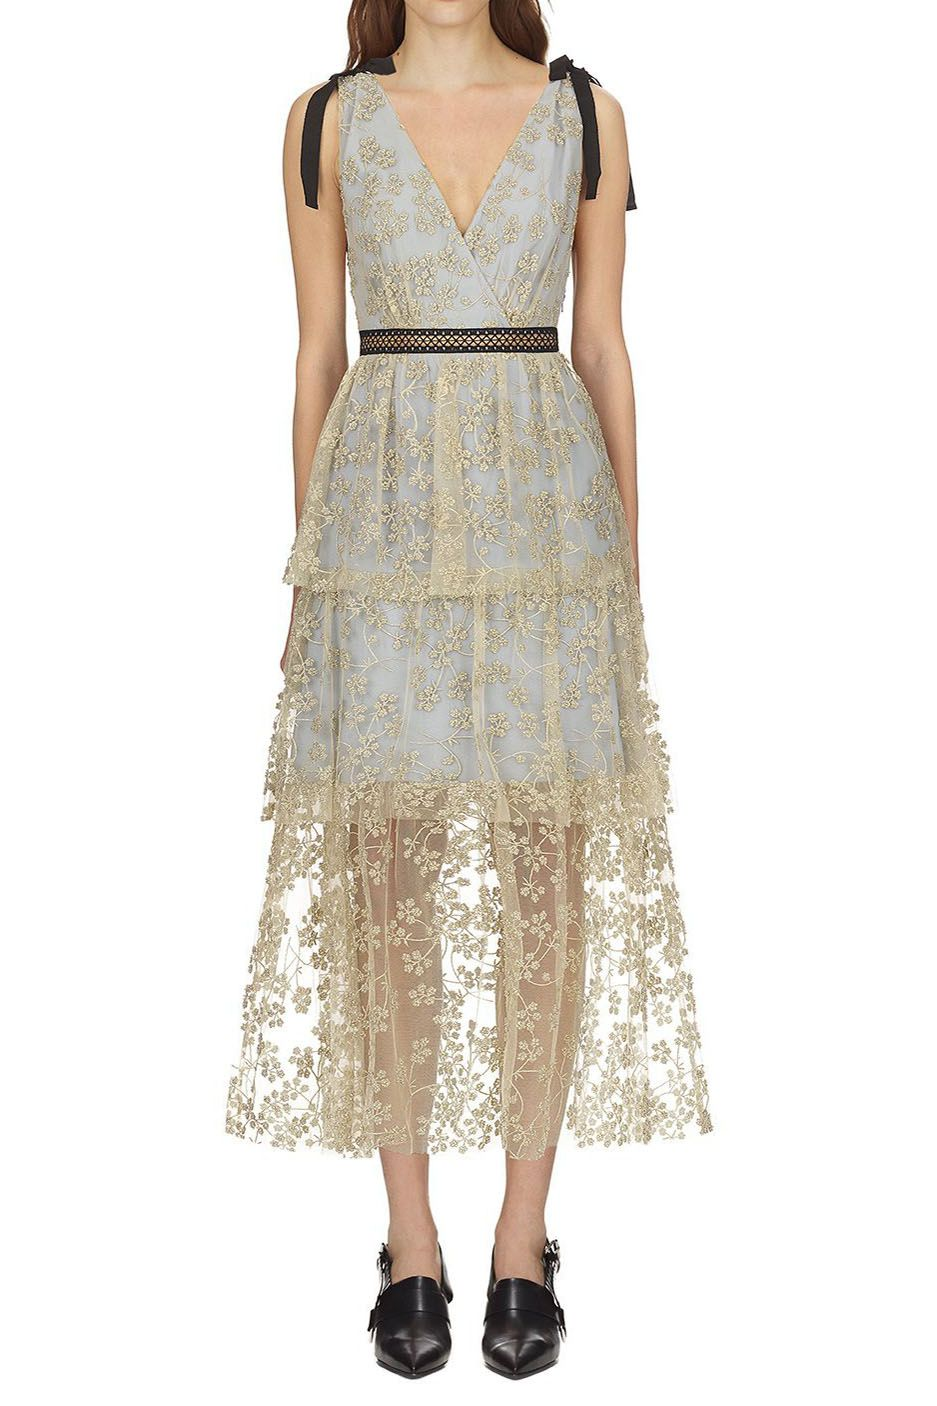 79b8c41edb Self Portrait Tiered Floral Embroidered Mesh Midi Dress | Clothes in ...